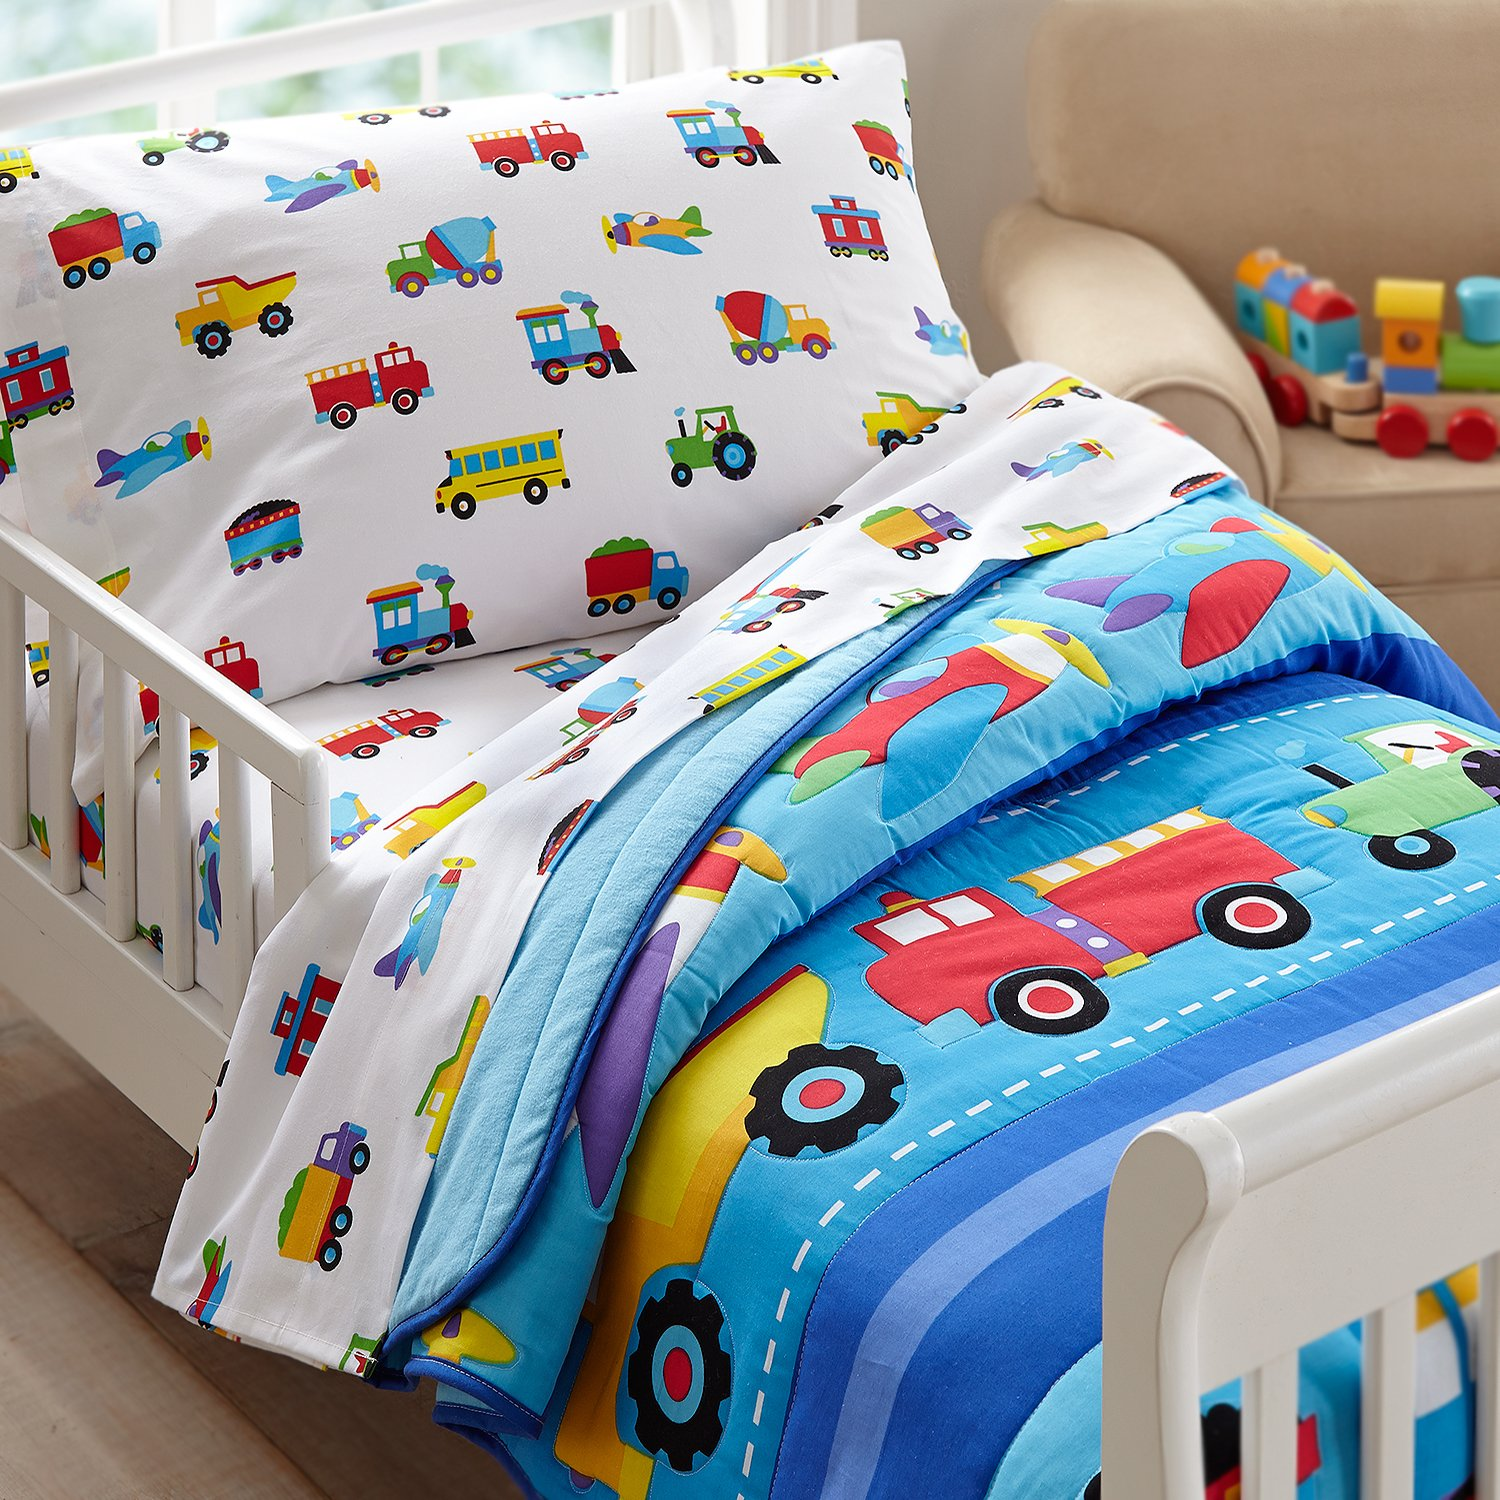 of quilt trolls impressive excellent tags boys beds size bed sets bedding bedgirls sports full concept toddler girls tag boat batman image for